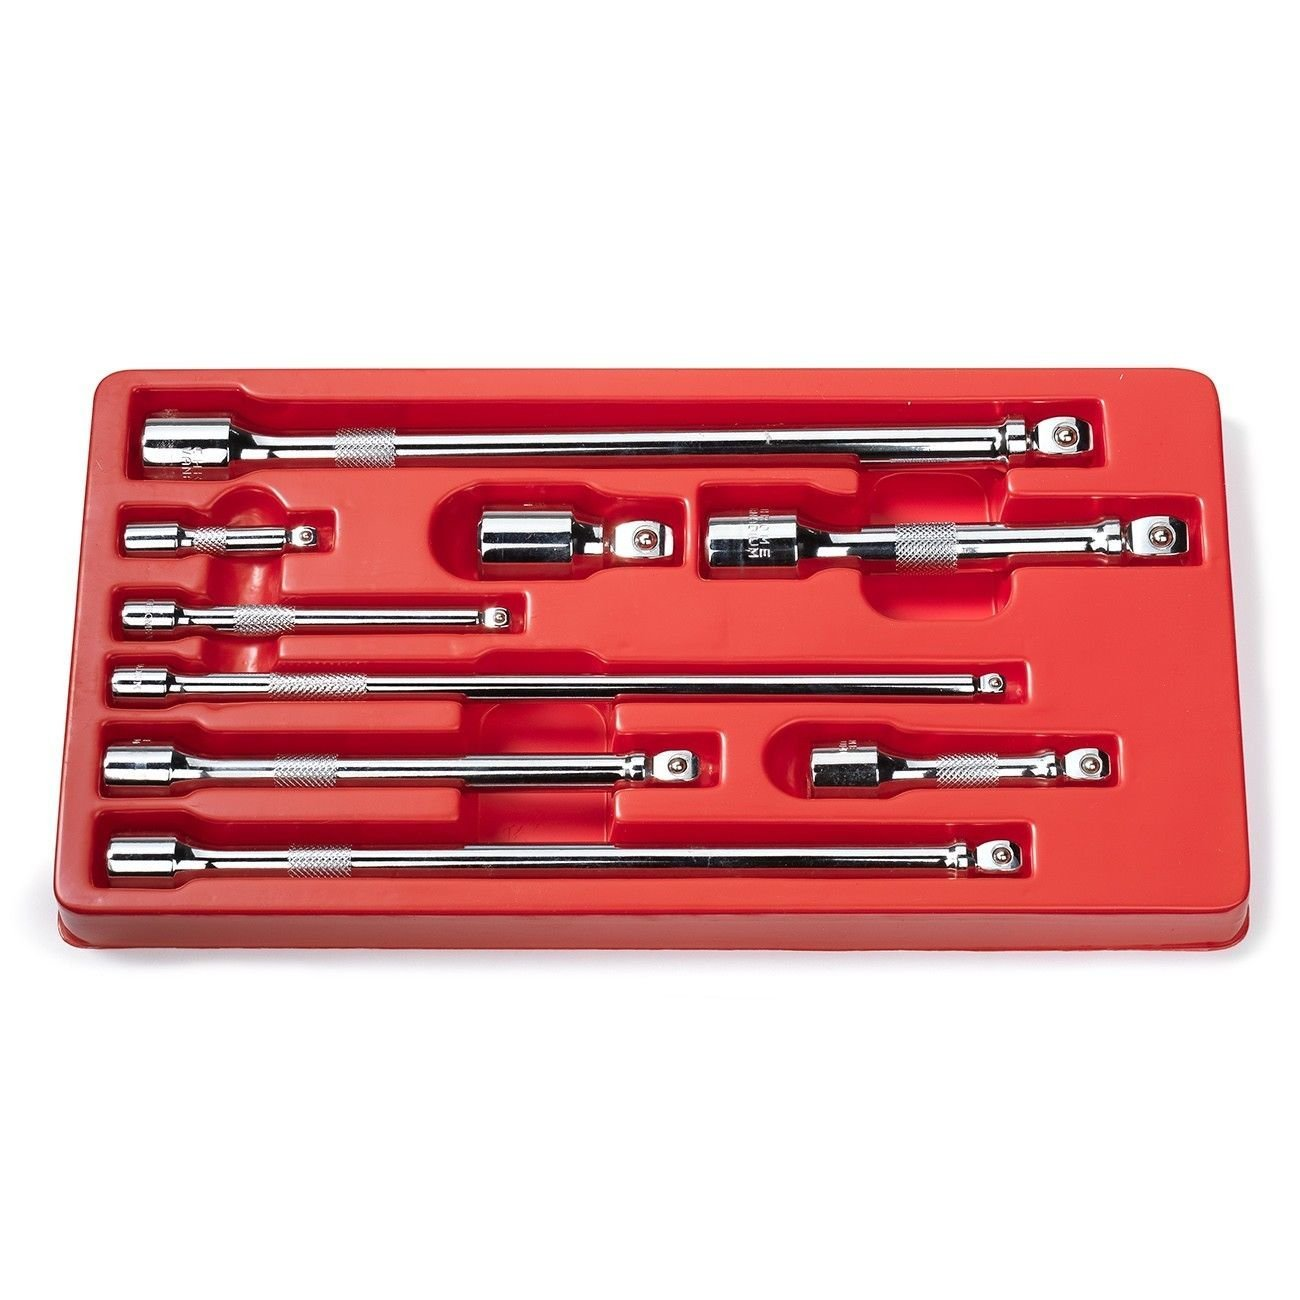 "ESKALEX>>9PC Drive Car Wobble Socket Extension Bar Hand Tool Set Kit Box 1/4"" 3/8"" 1/2"" And CrV >>Wobble End Extension Design >>Heat Treated and Fully Hardened"